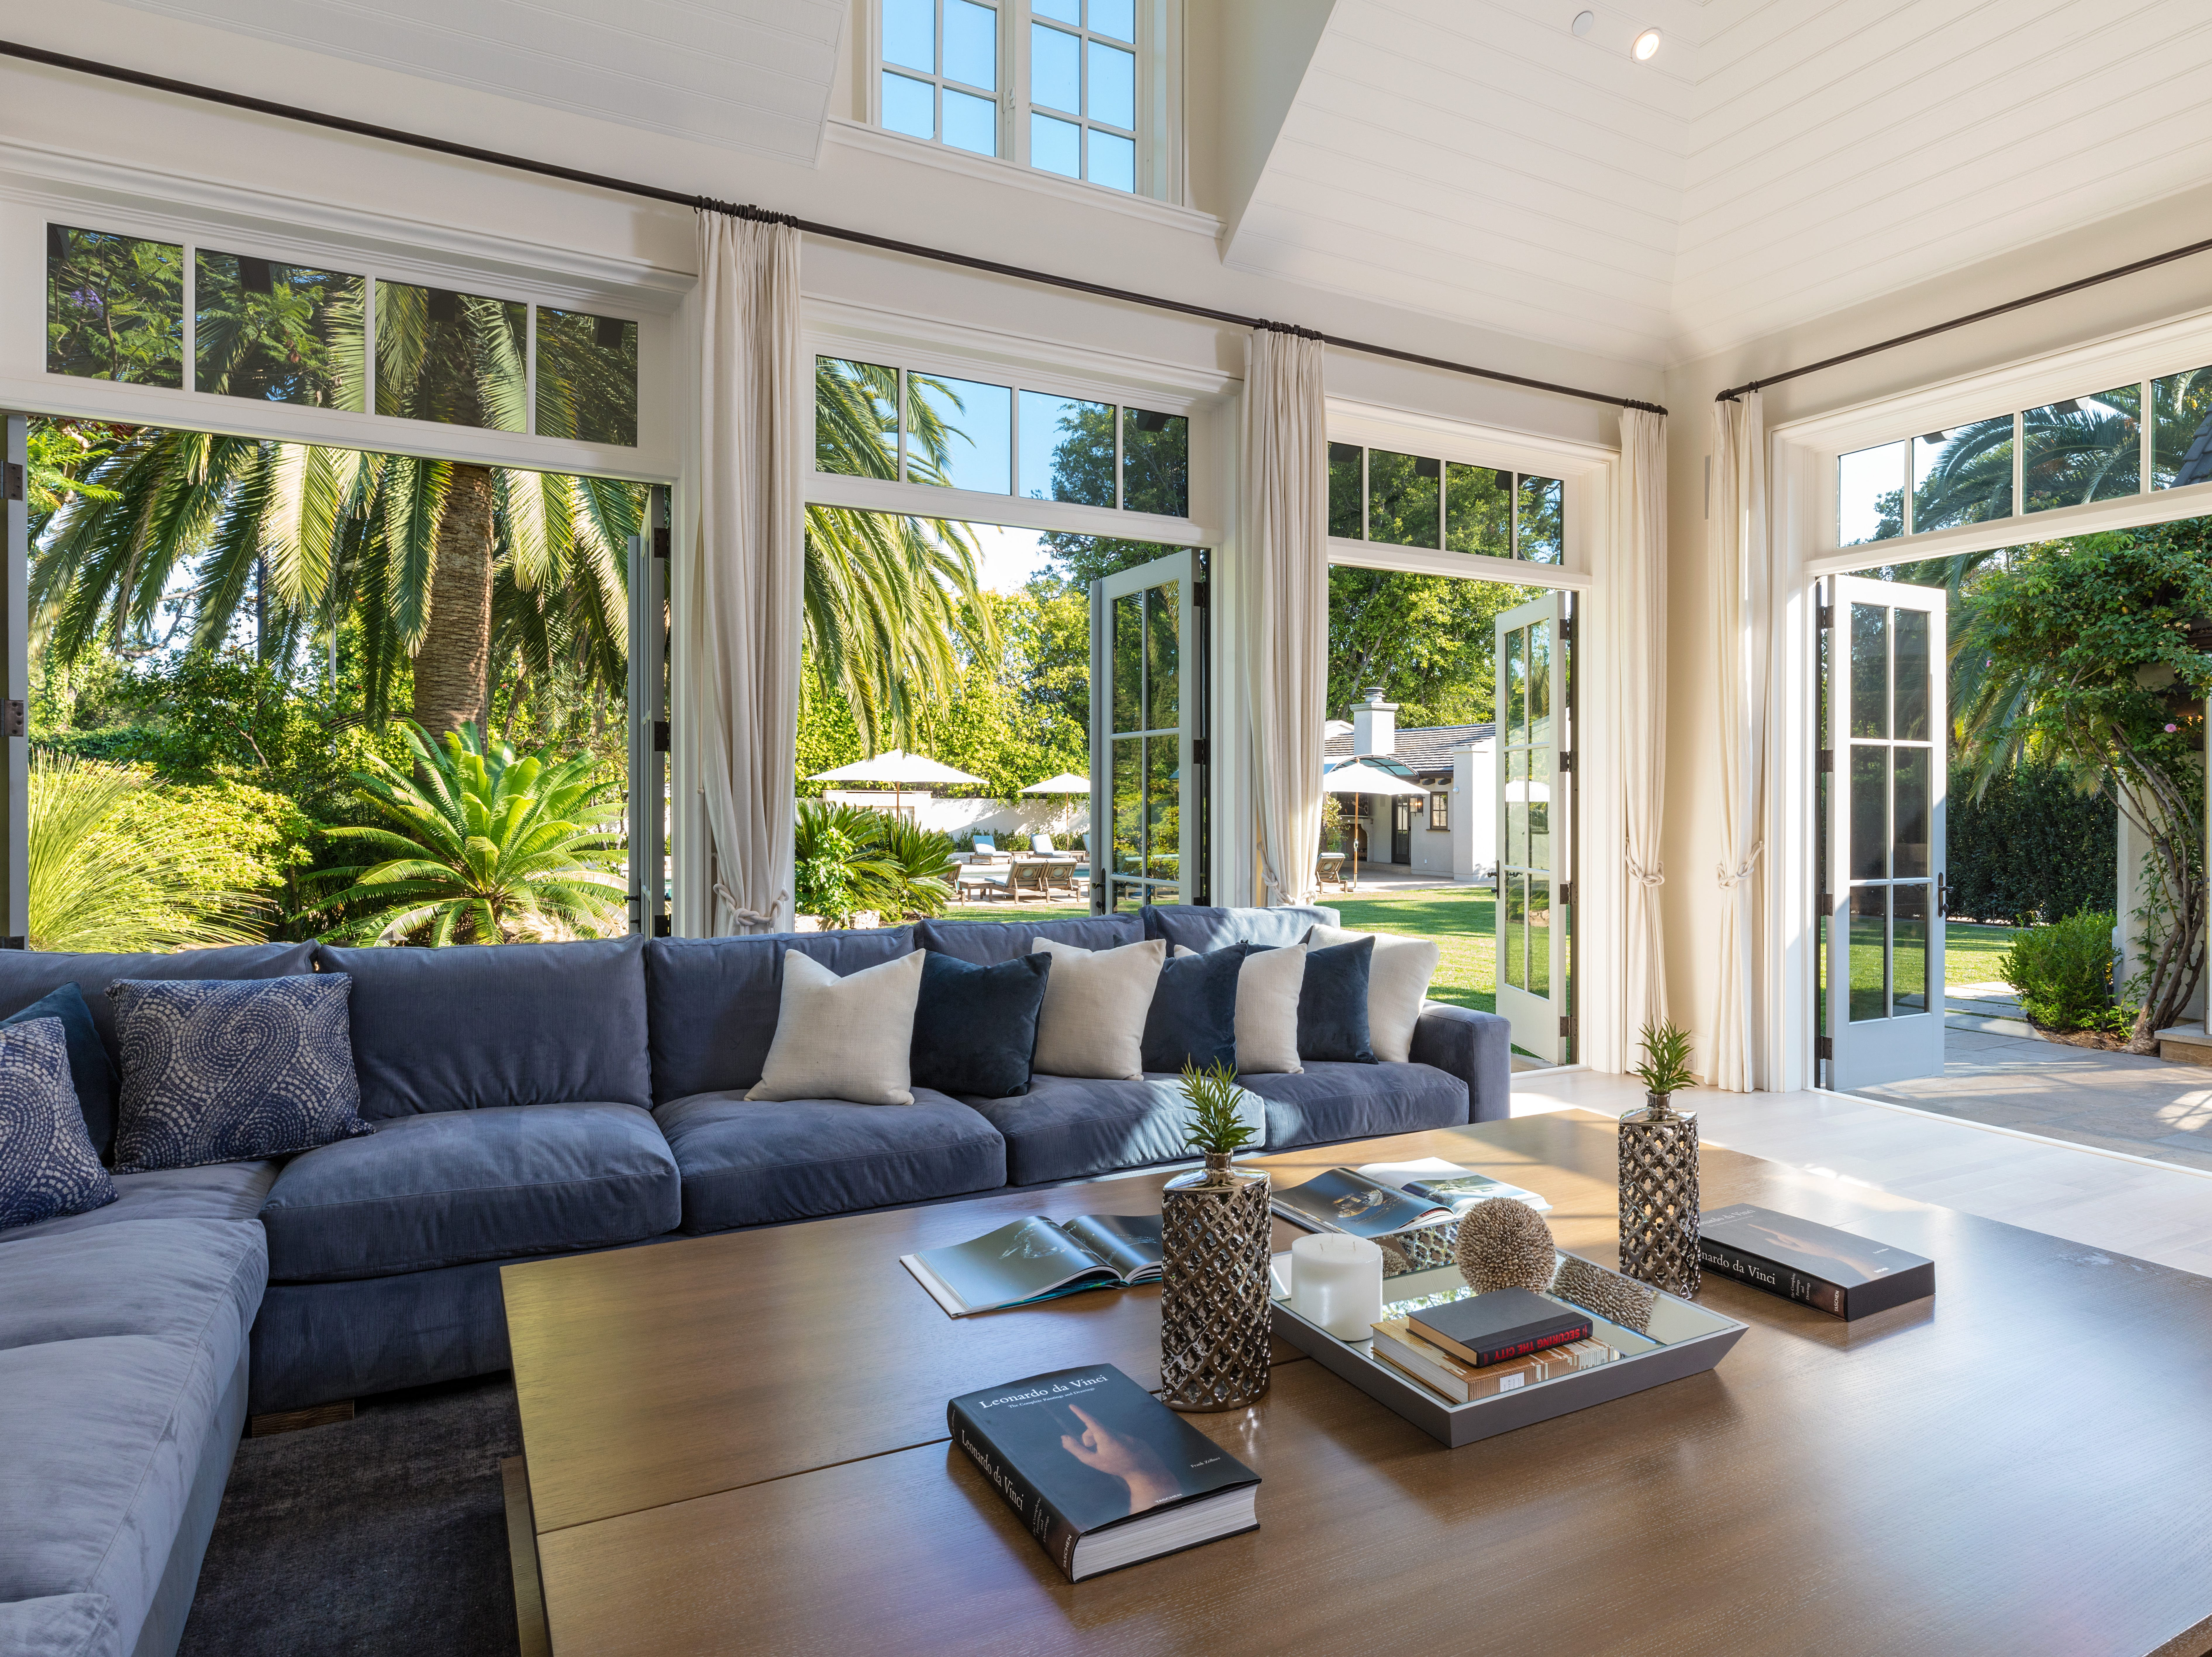 Designed to take full advantage of the climate for indoor-outdoor living, the bright sunny interior with its vaulted and beamed ceilings opens to a 60-foot pool and spa and a north-south tennis court on the mature landscaped grounds.